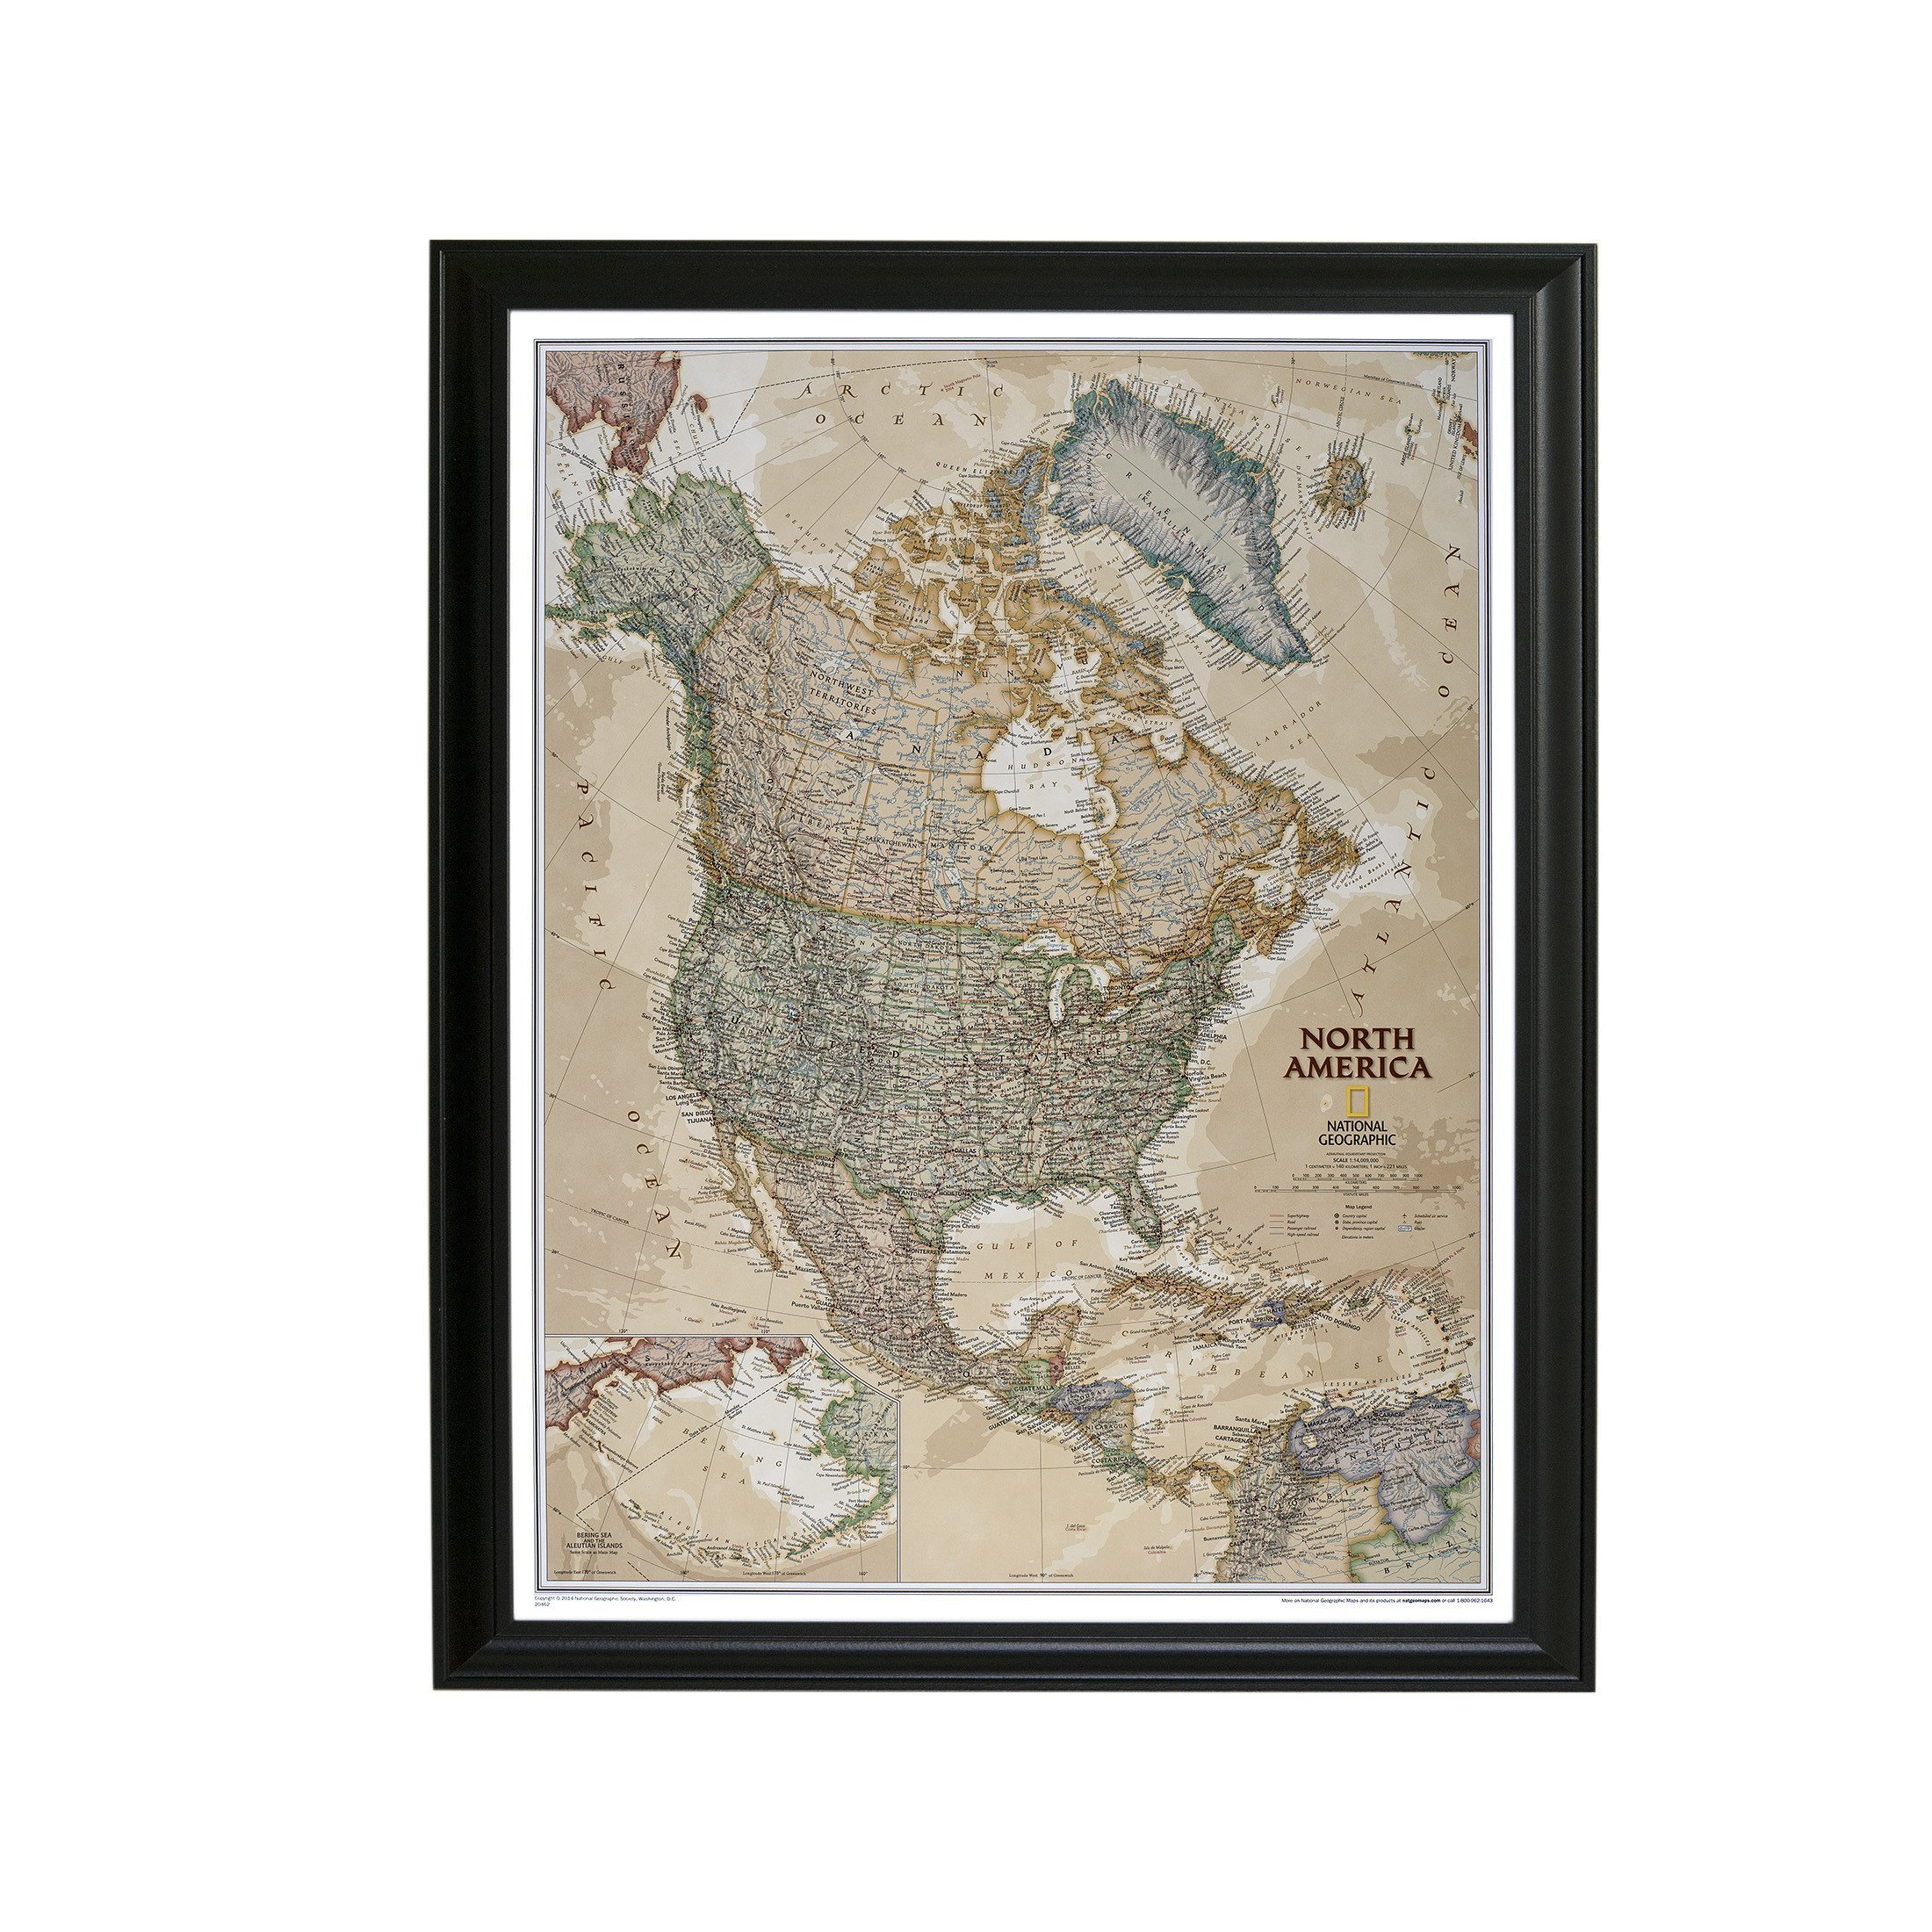 Executive North America Push Pin Travel Map with Black Frame and Pins